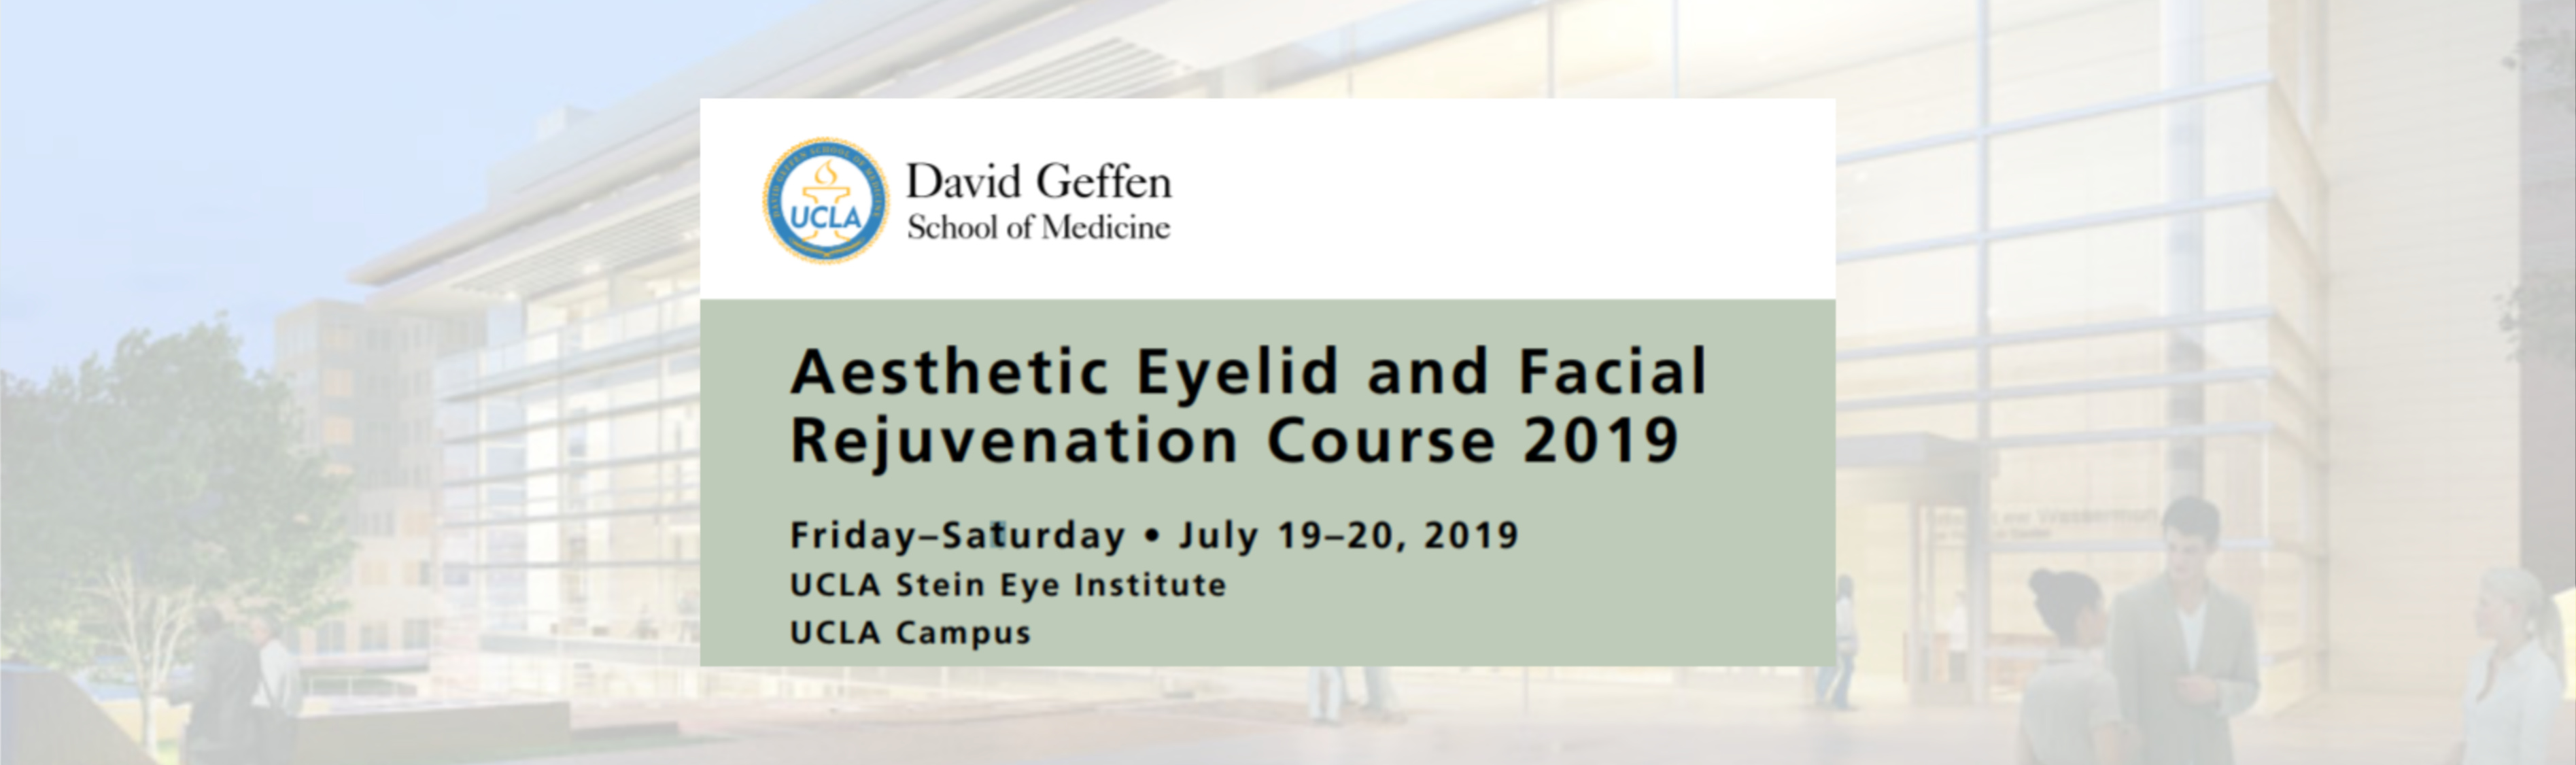 UCLA Stein Eye Institute: Aesthetic Eyelid and Facial Rejuvenation Course 2019